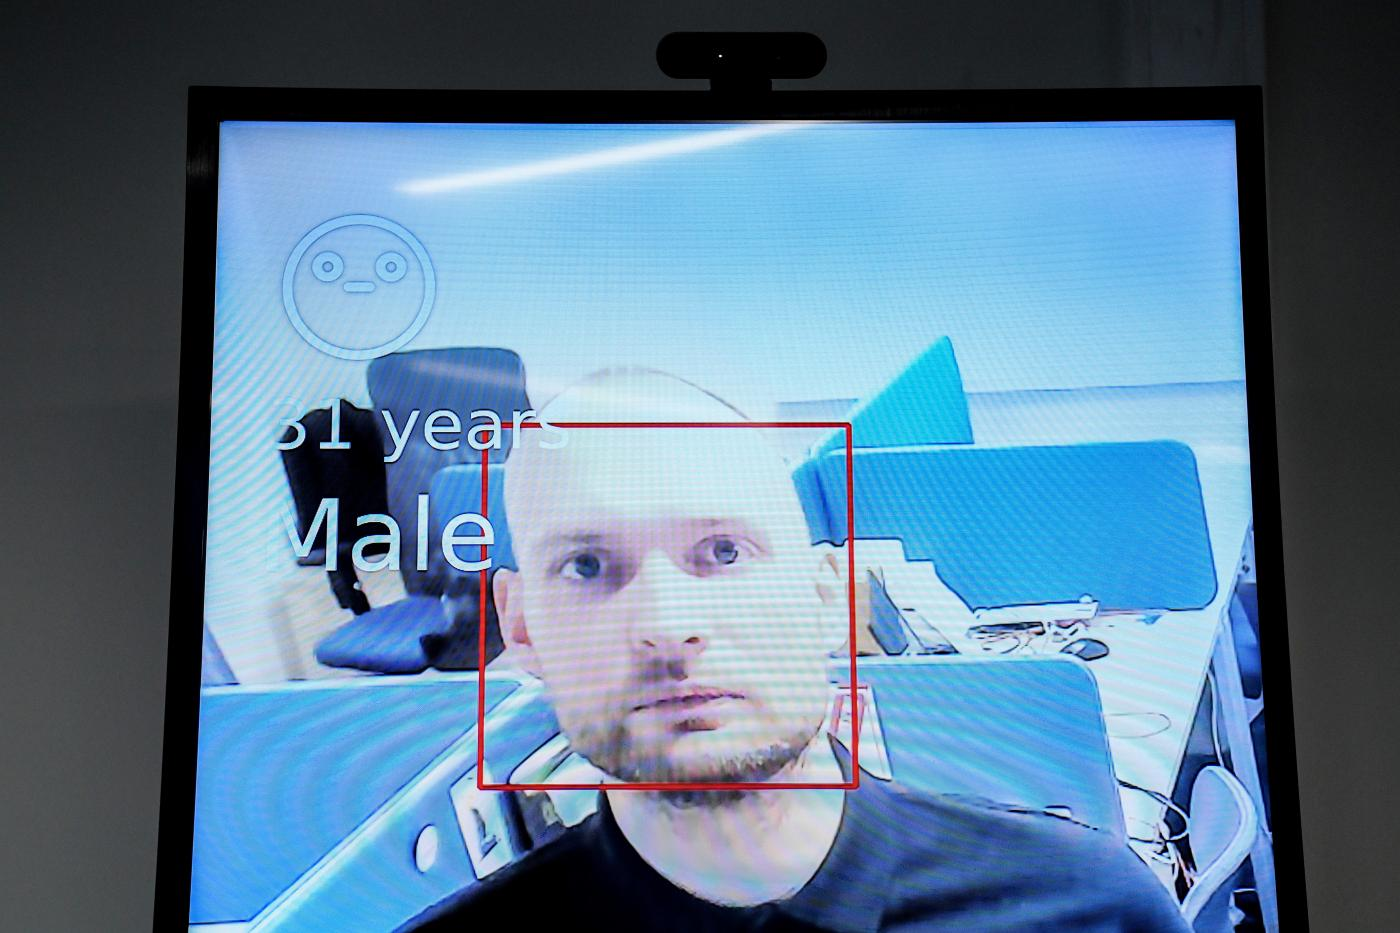 Microsoft set to divest from Israeli facial recognition firm tracking Palestinians